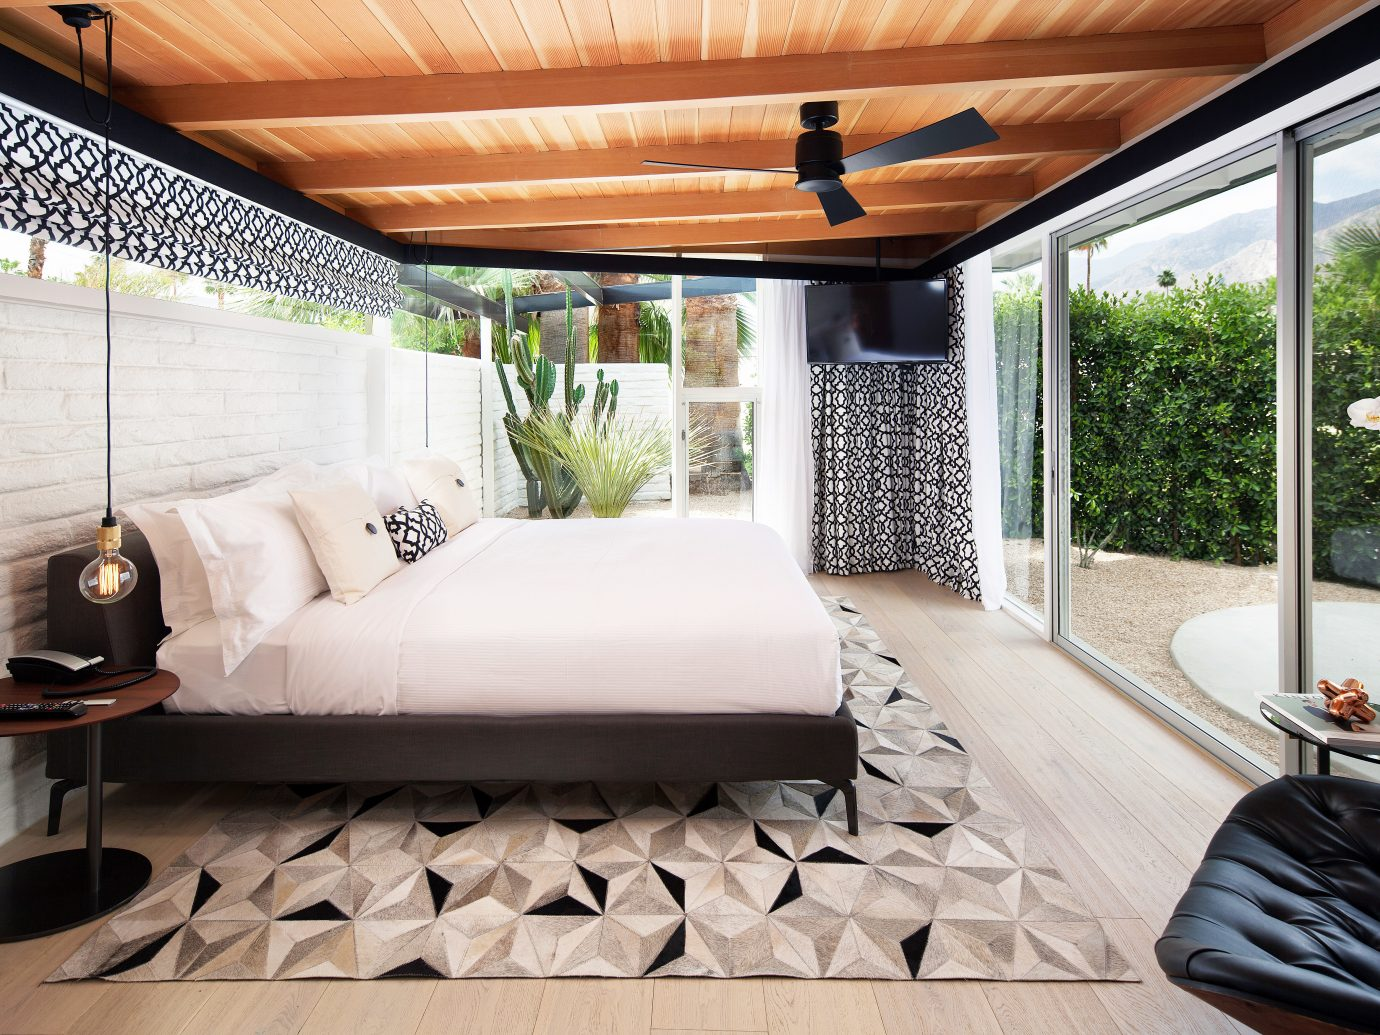 Bedroom Hip Hotels Luxury Modern Patio Road Trips Romance Scenic views Style + Design Suite Trip Ideas property room indoor living room home floor porch interior design estate cottage real estate Villa Design outdoor structure ceiling furniture